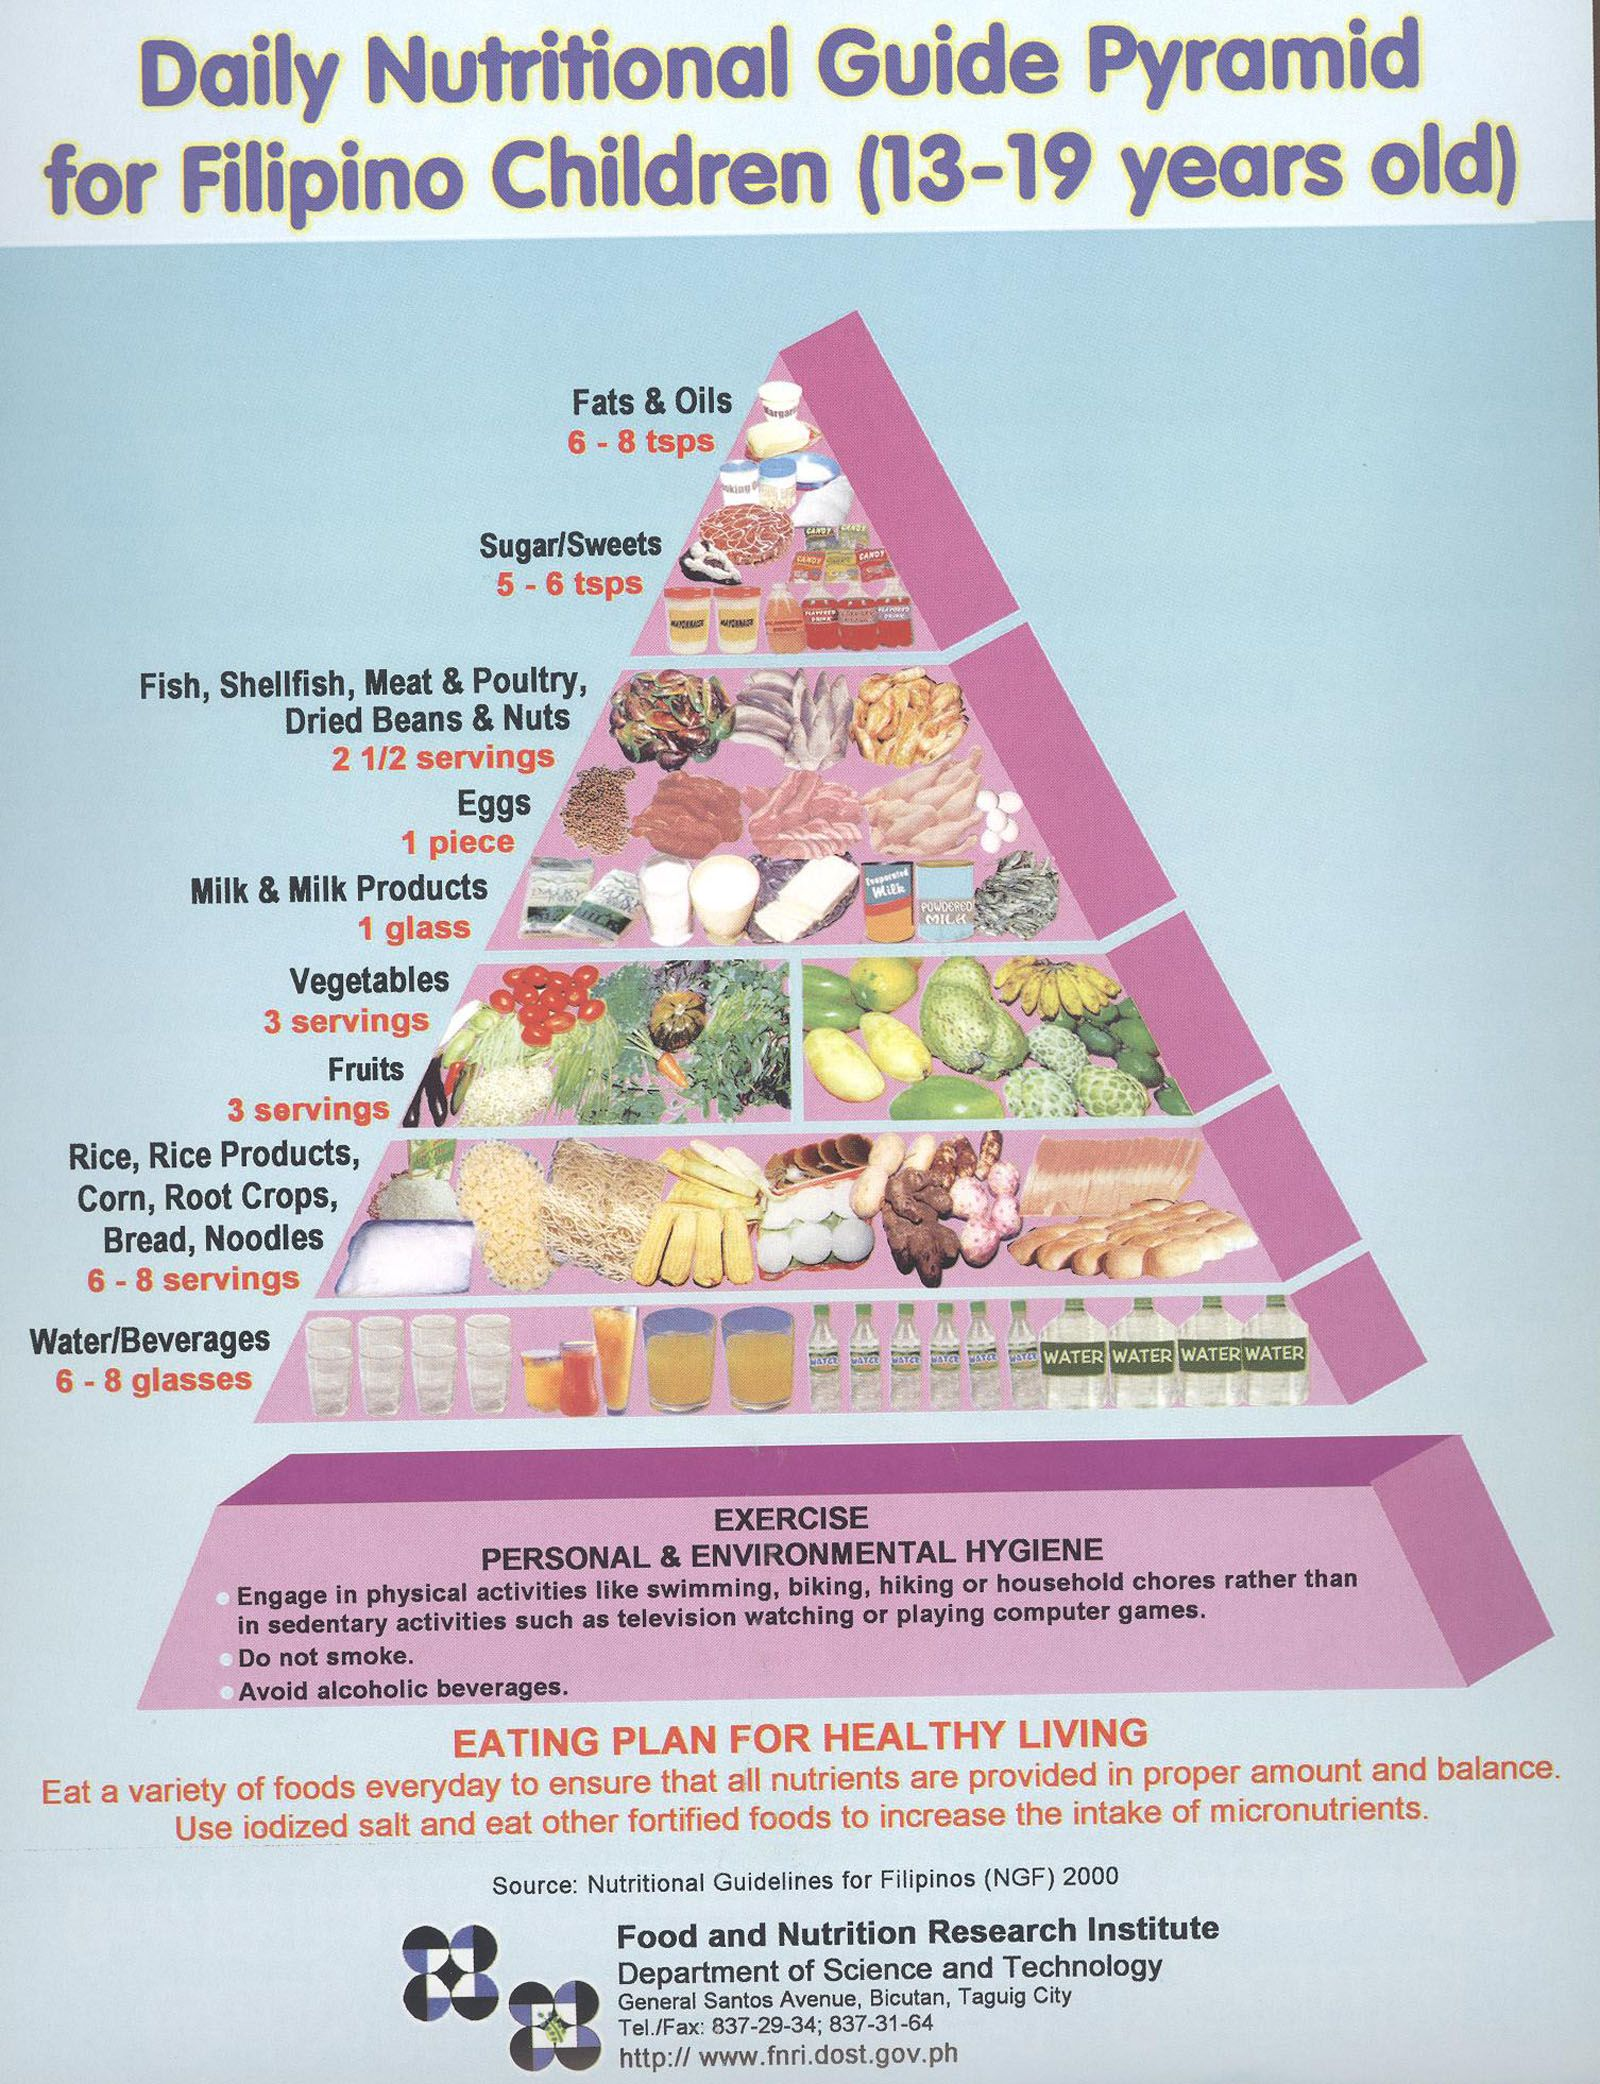 Daily diet for good health -  Required Learn About The Relationship Between Your Diet And Good Health Learn About At Least One Of The Food Pyramids Plan One Week Of Healthy Menus